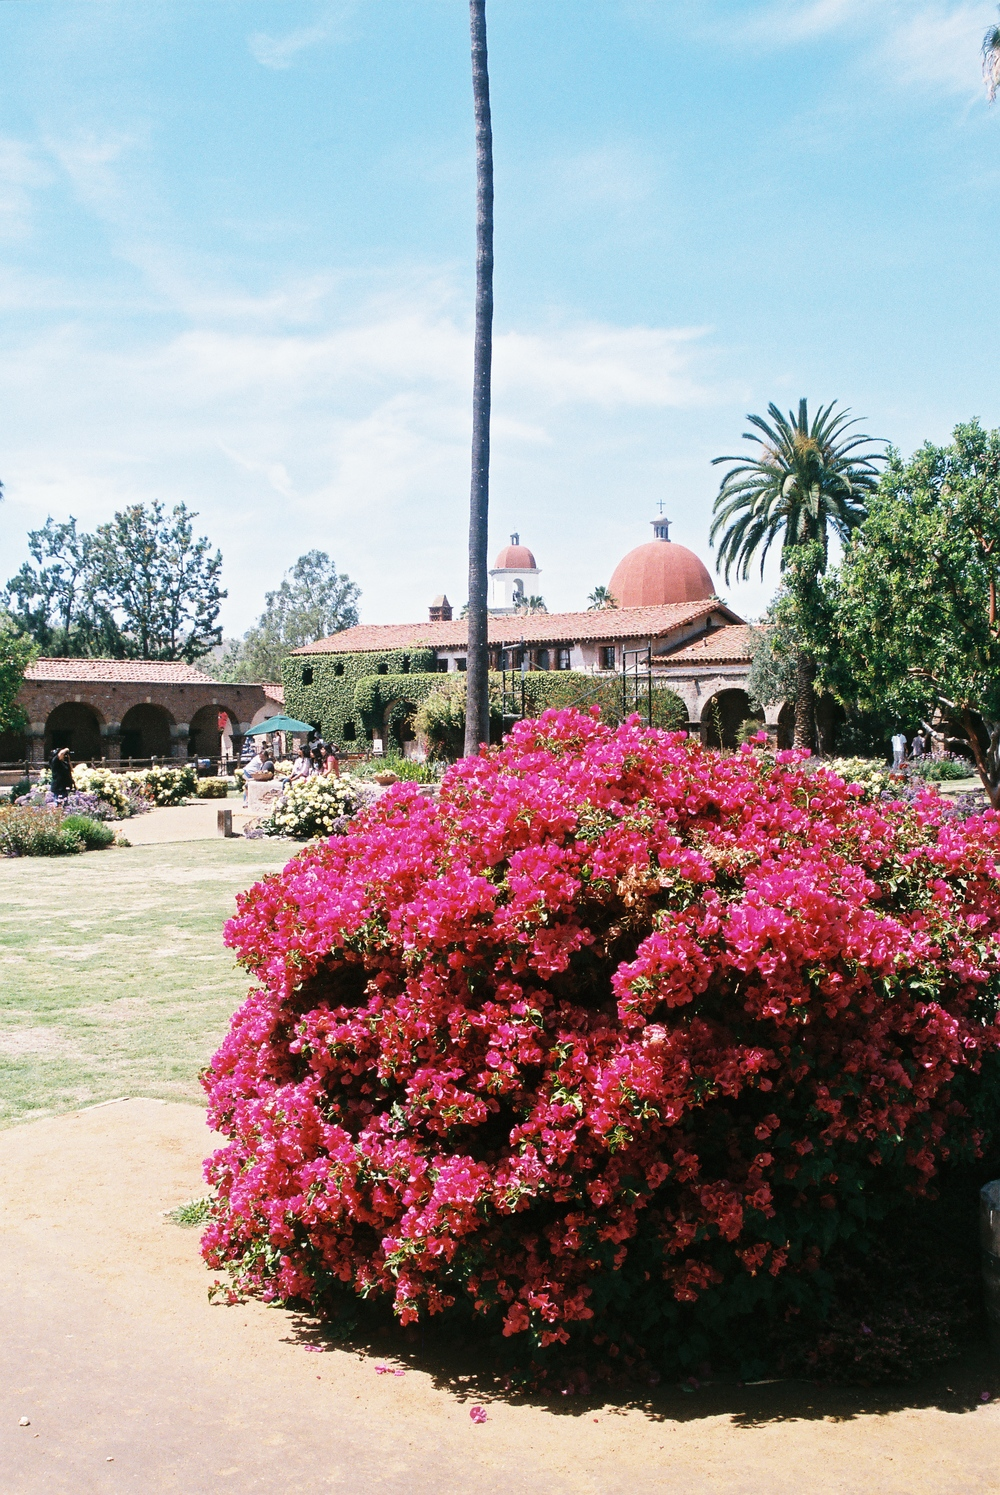 The Mission at San Juan Capistrano. The most beautiful location.